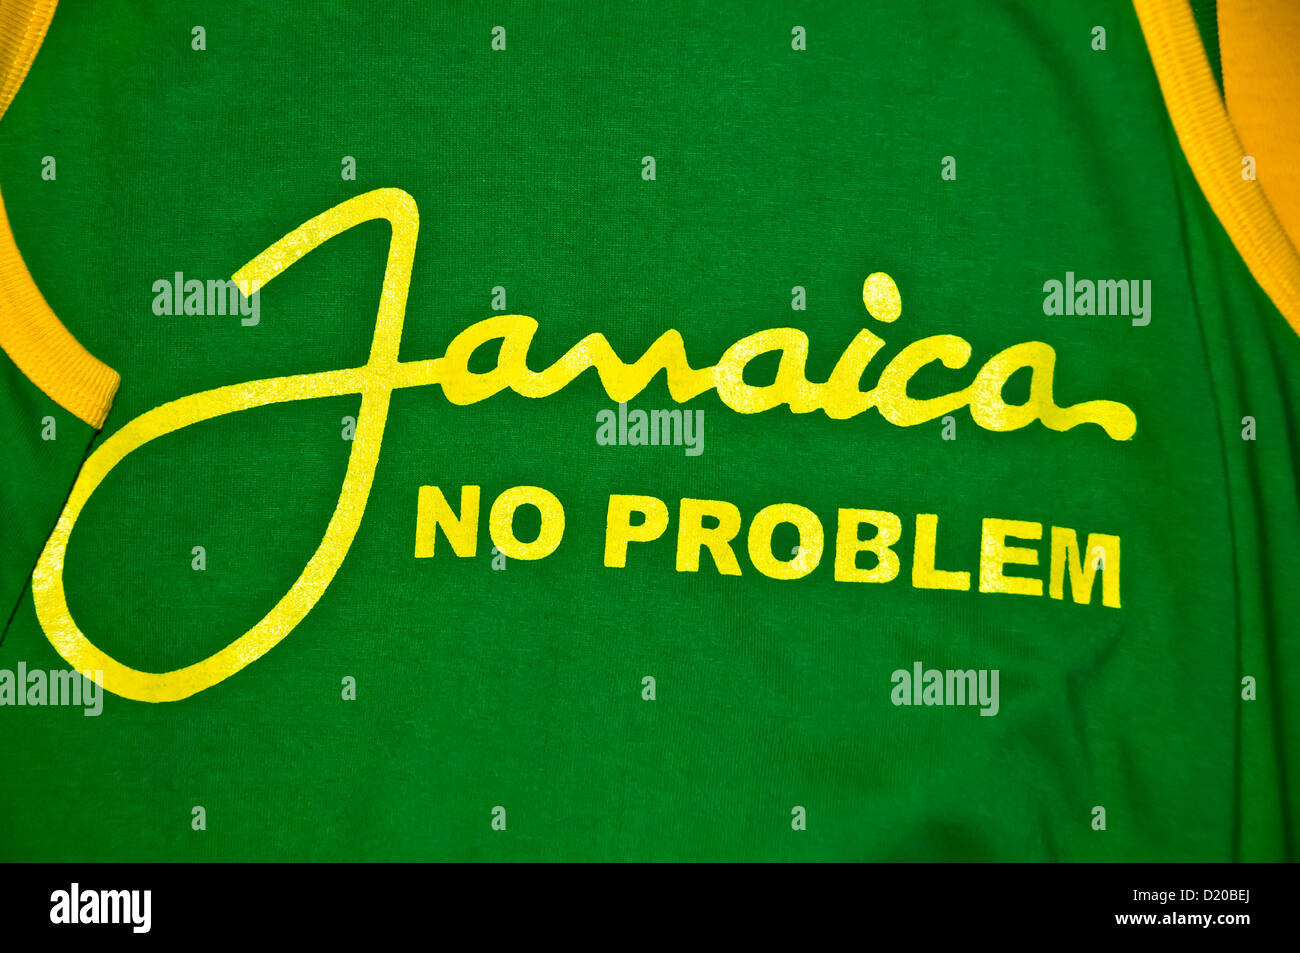 Jamaican People Stock Photos Jamaican People Stock Images Alamy